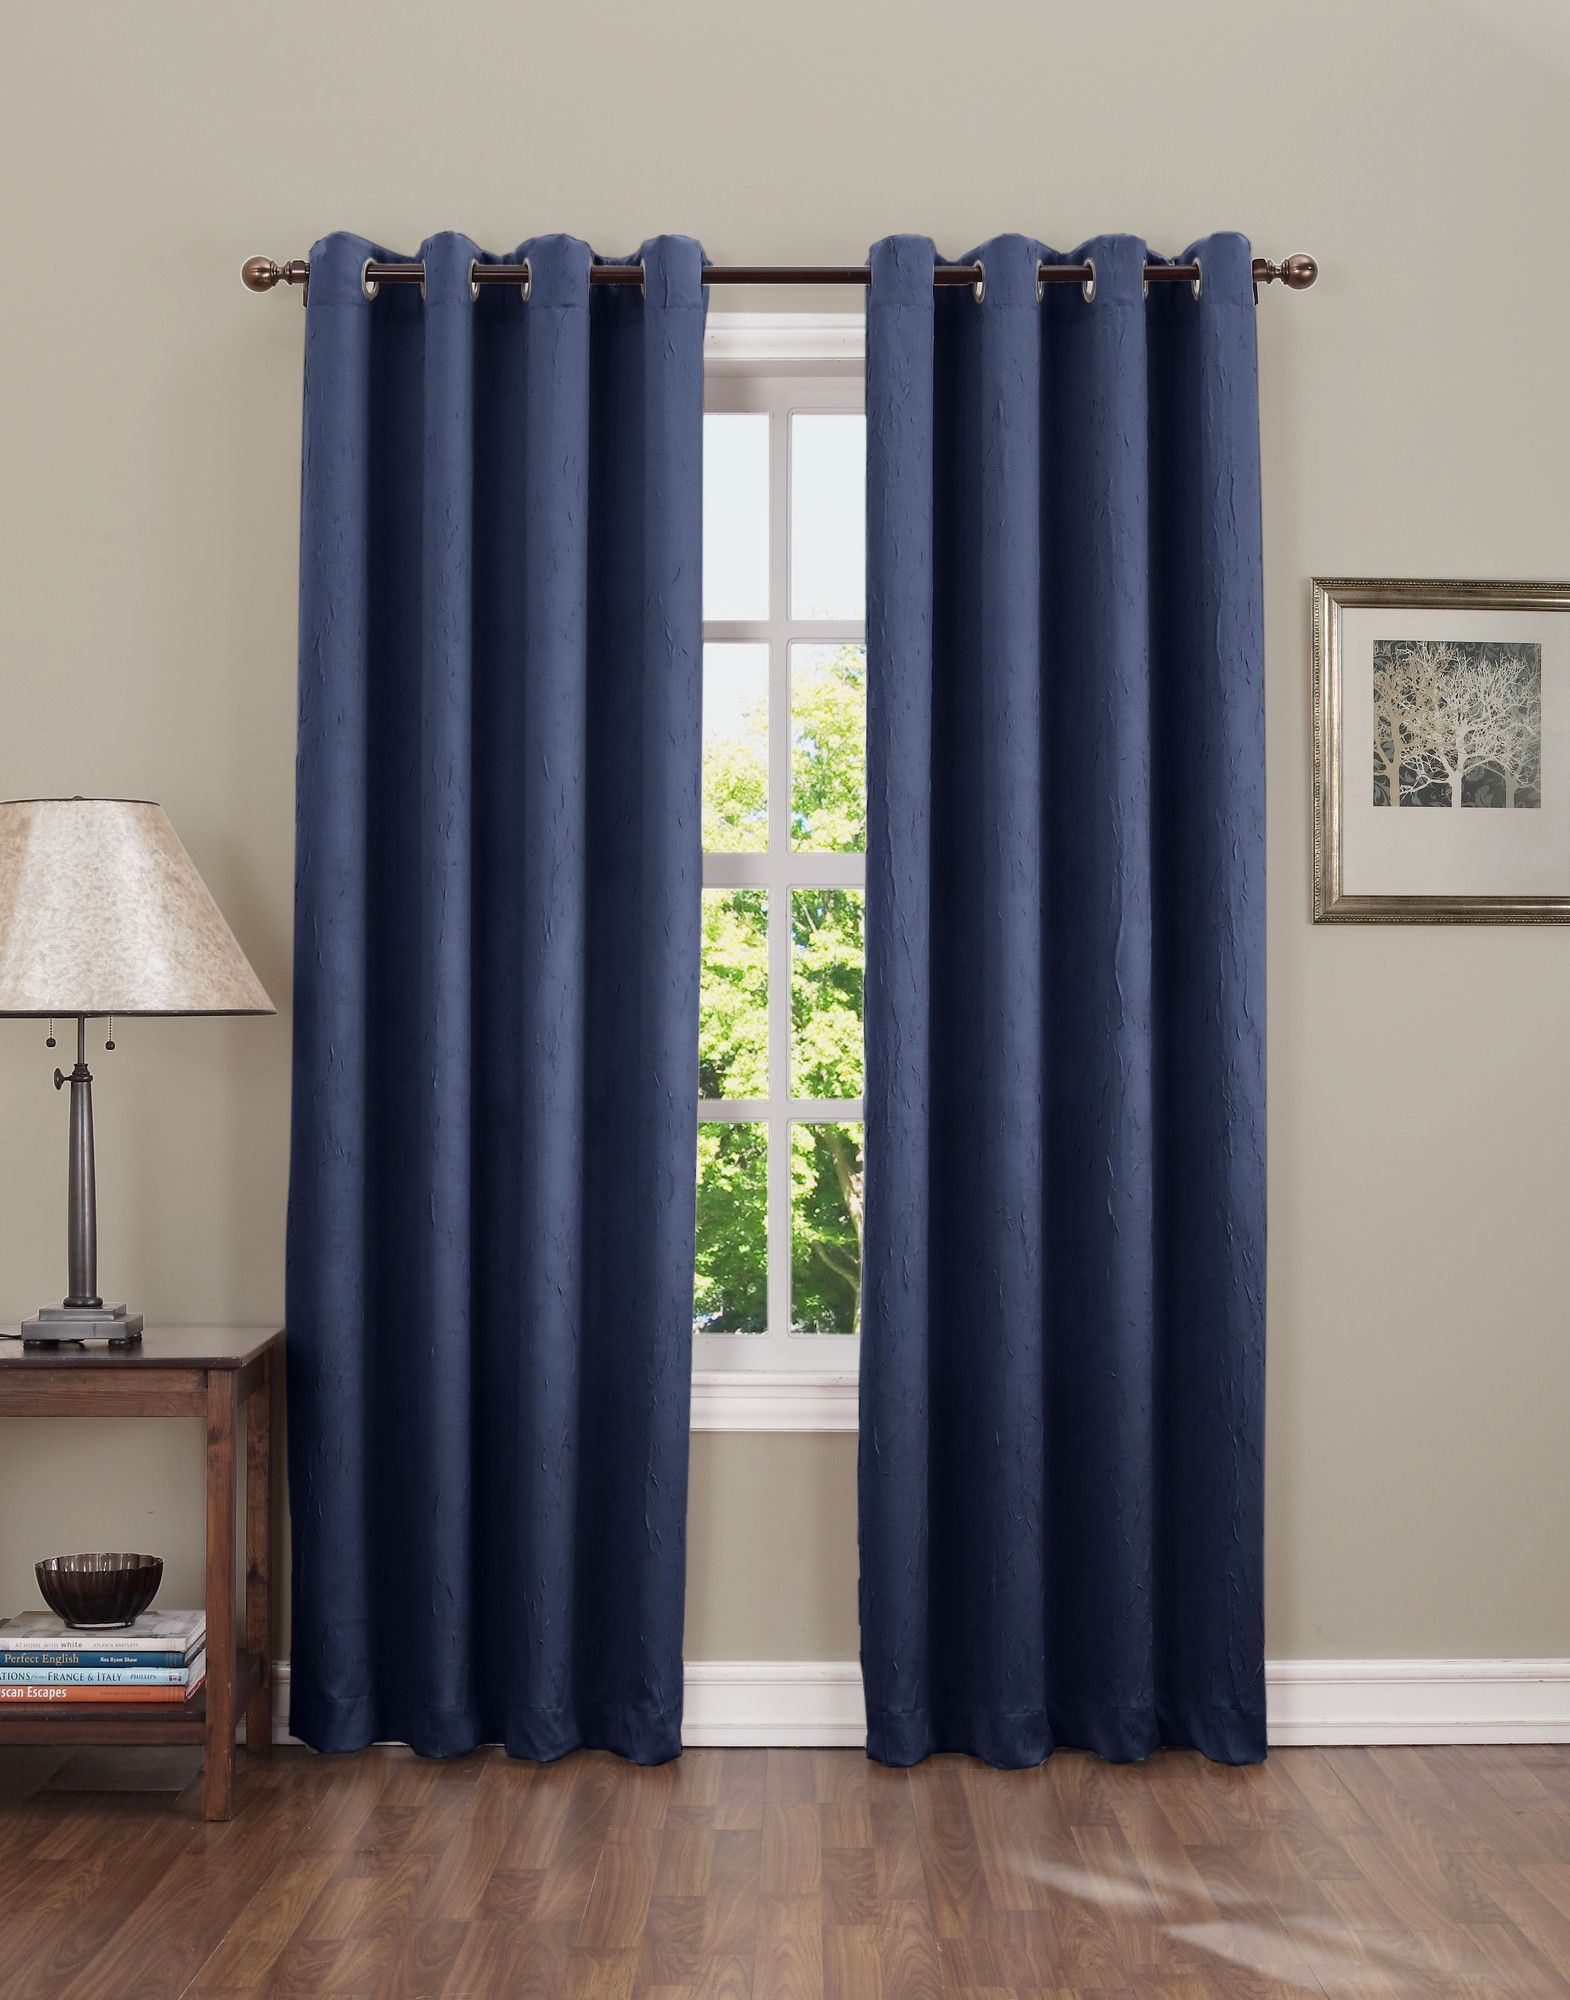 Trey curtain panel products pinterest products